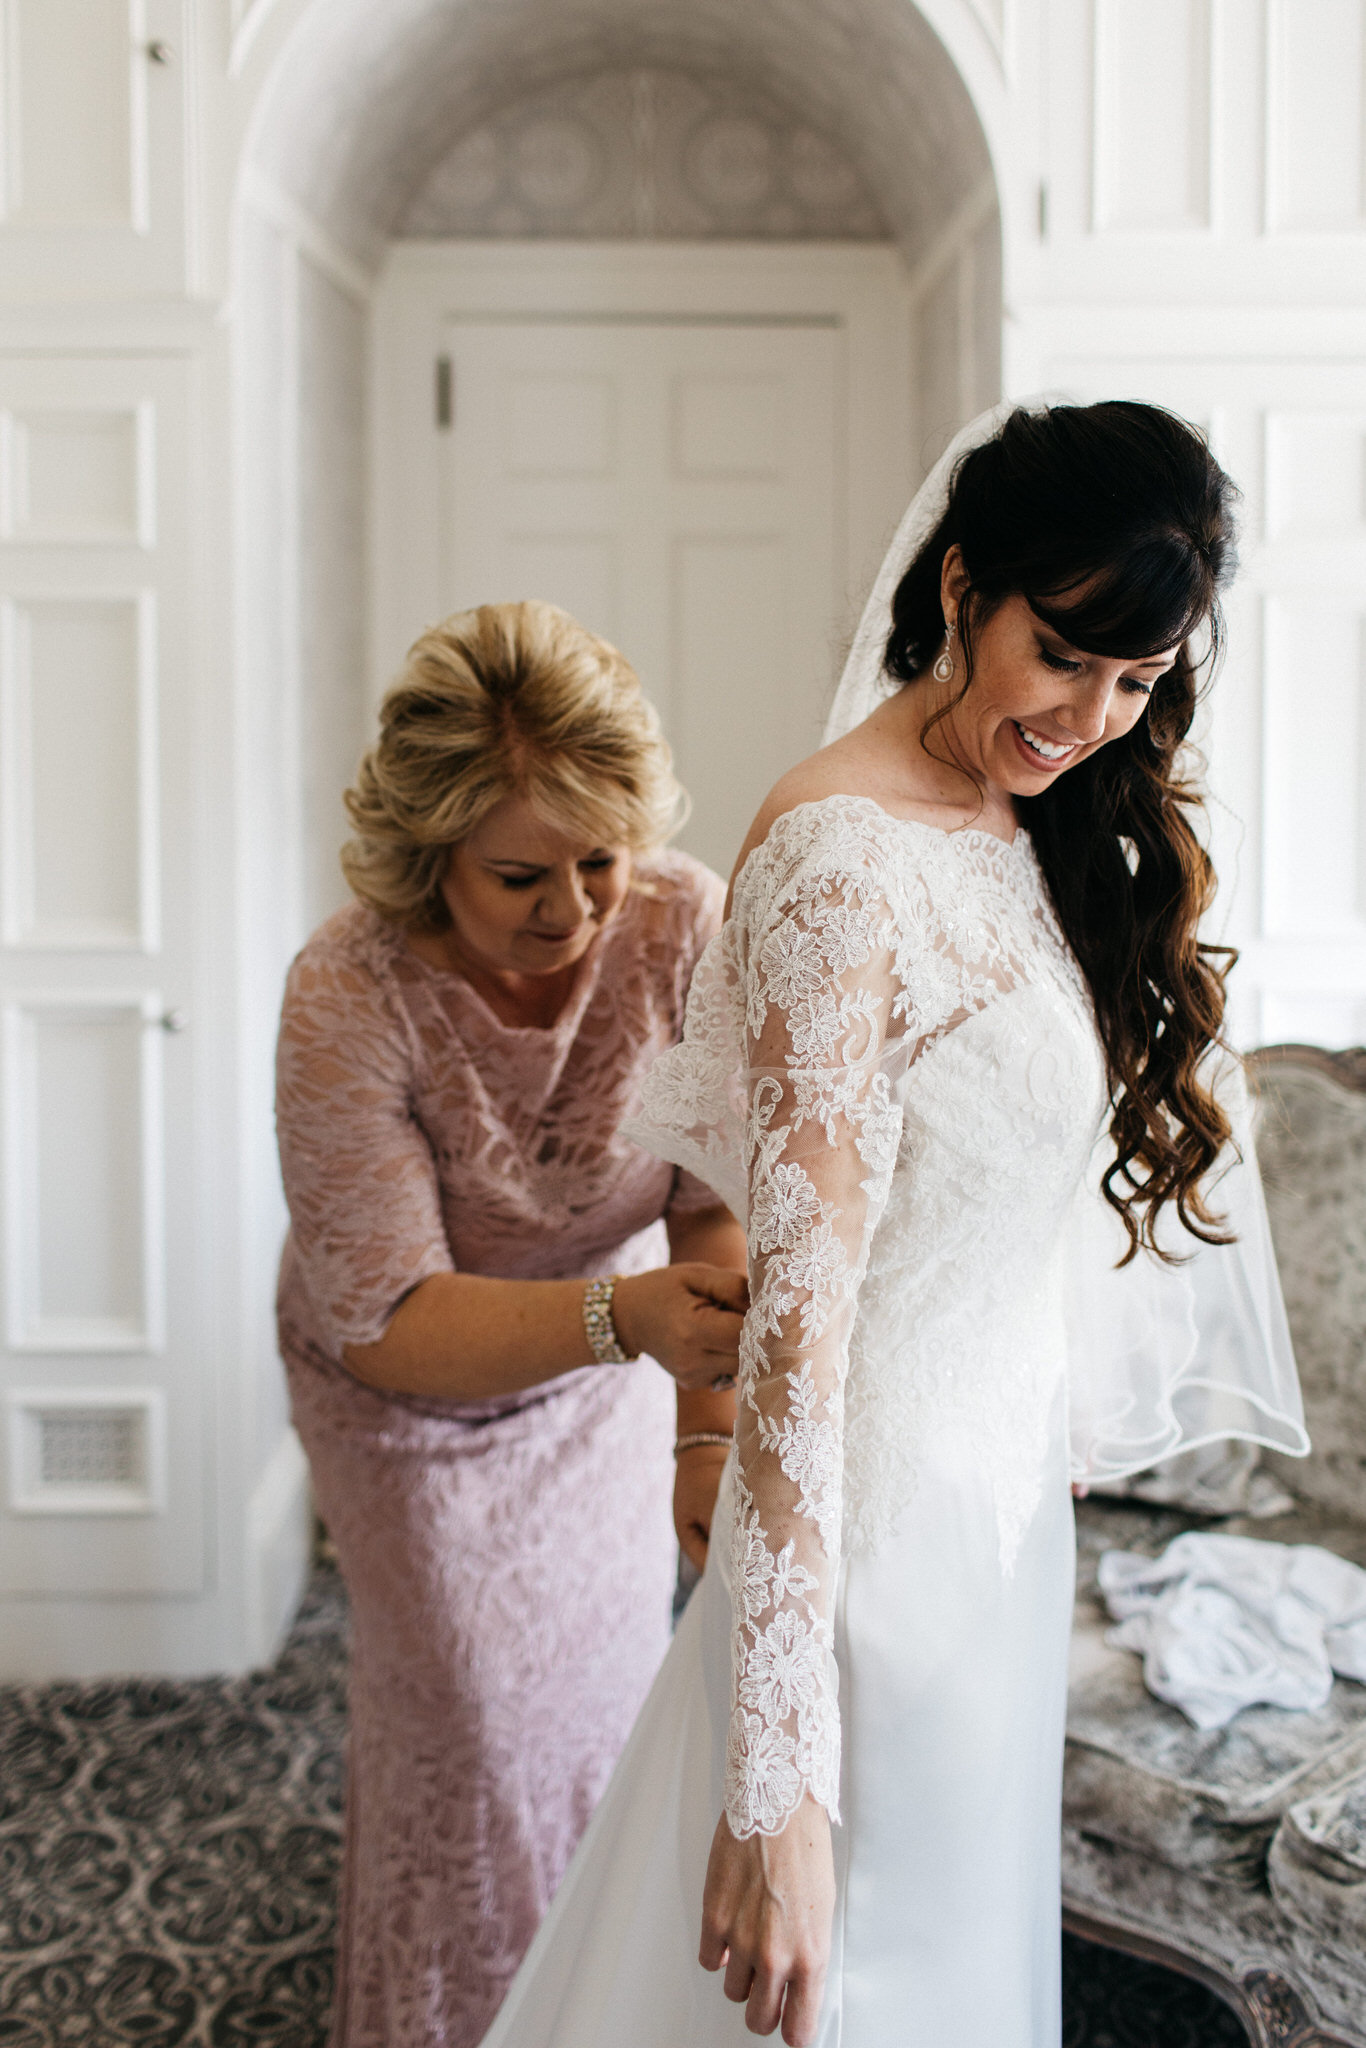 mother daughter, first look, toronto wedding, lace, wedding, beauty, getting ready, love, details, curated, wedding photography, toronto, canada, female photographer, traditional wedding, traditionmother daughter, first look, toronto wedding, lace, wedding, beauty, getting ready, love, details, curated, wedding photography, toronto, canada, female photographer, traditional wedding, tradition